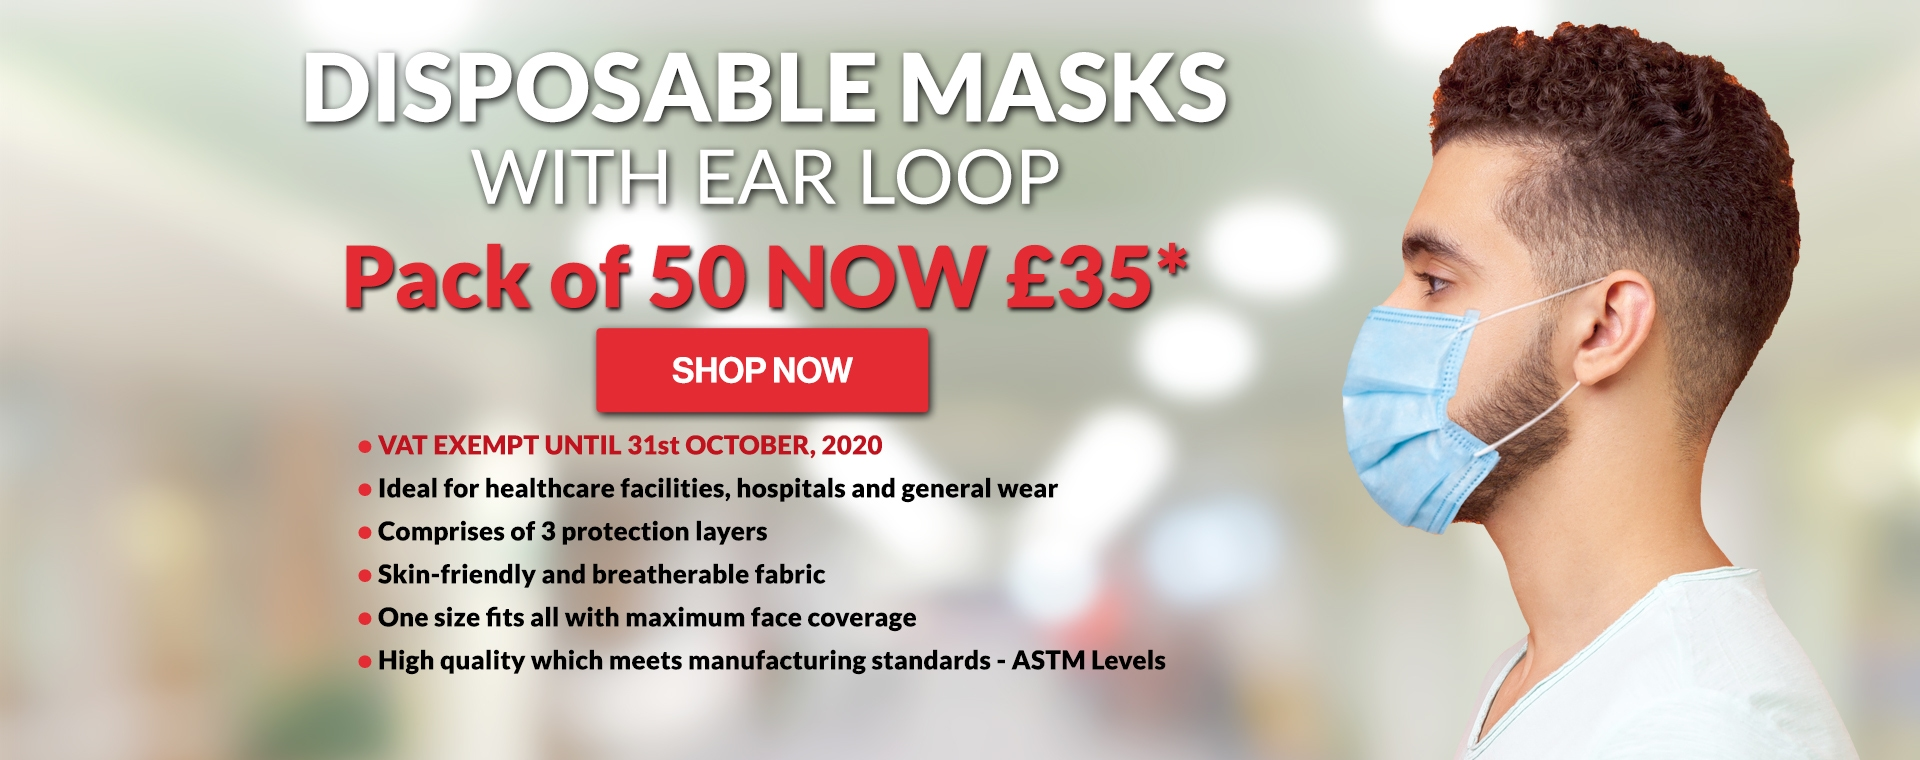 Disposable Mask with Ear Loop